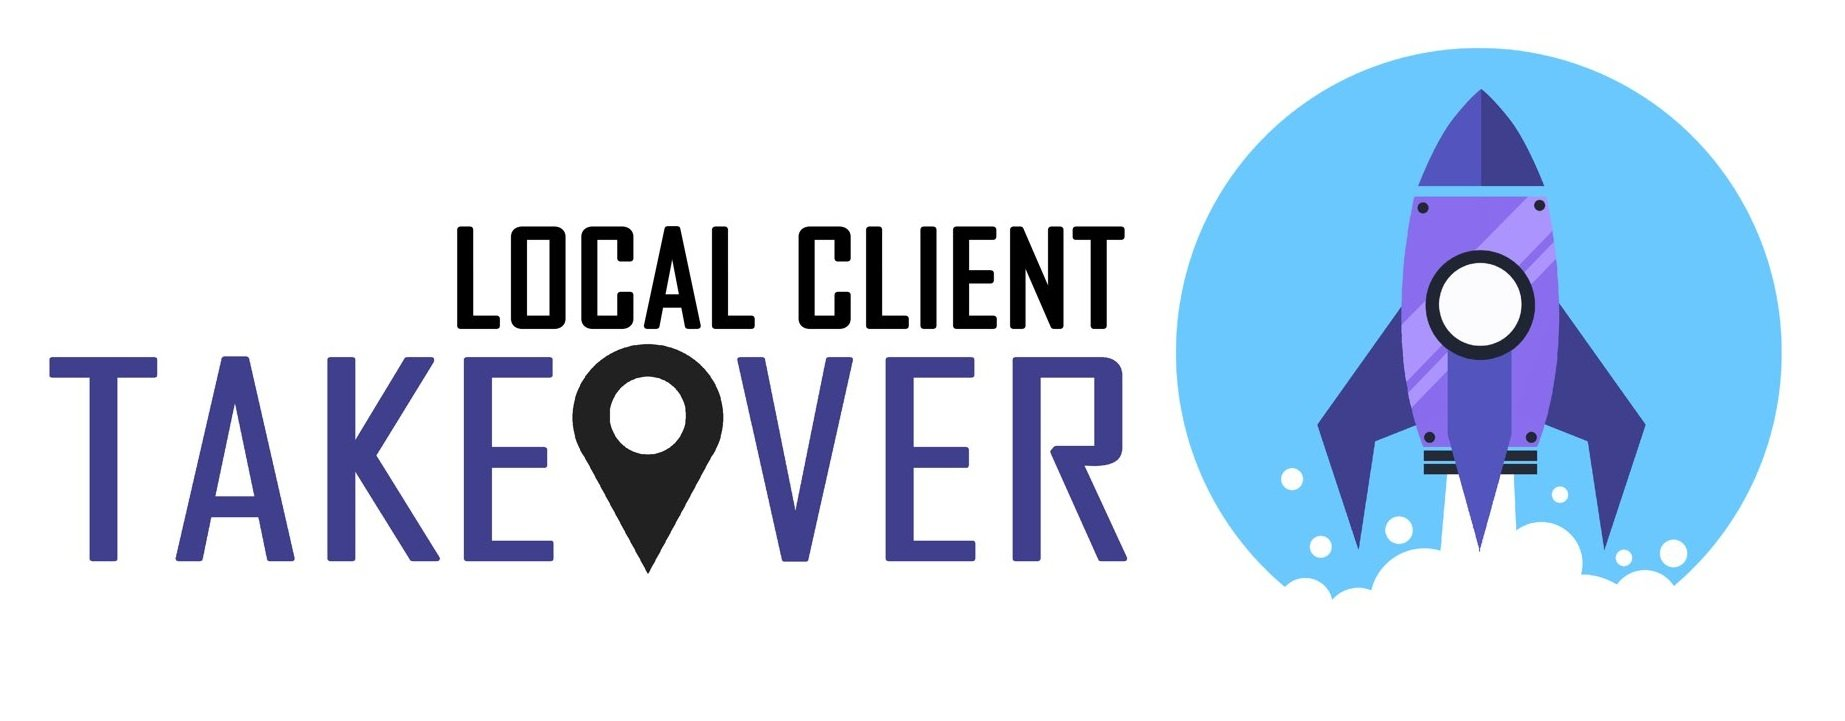 "Local Client Takeover Announces the Launch of Its Brand New Services, ""Monthly Entity Signals"" to Establish Strong, Authoritative, and Consistent Brand Presence"